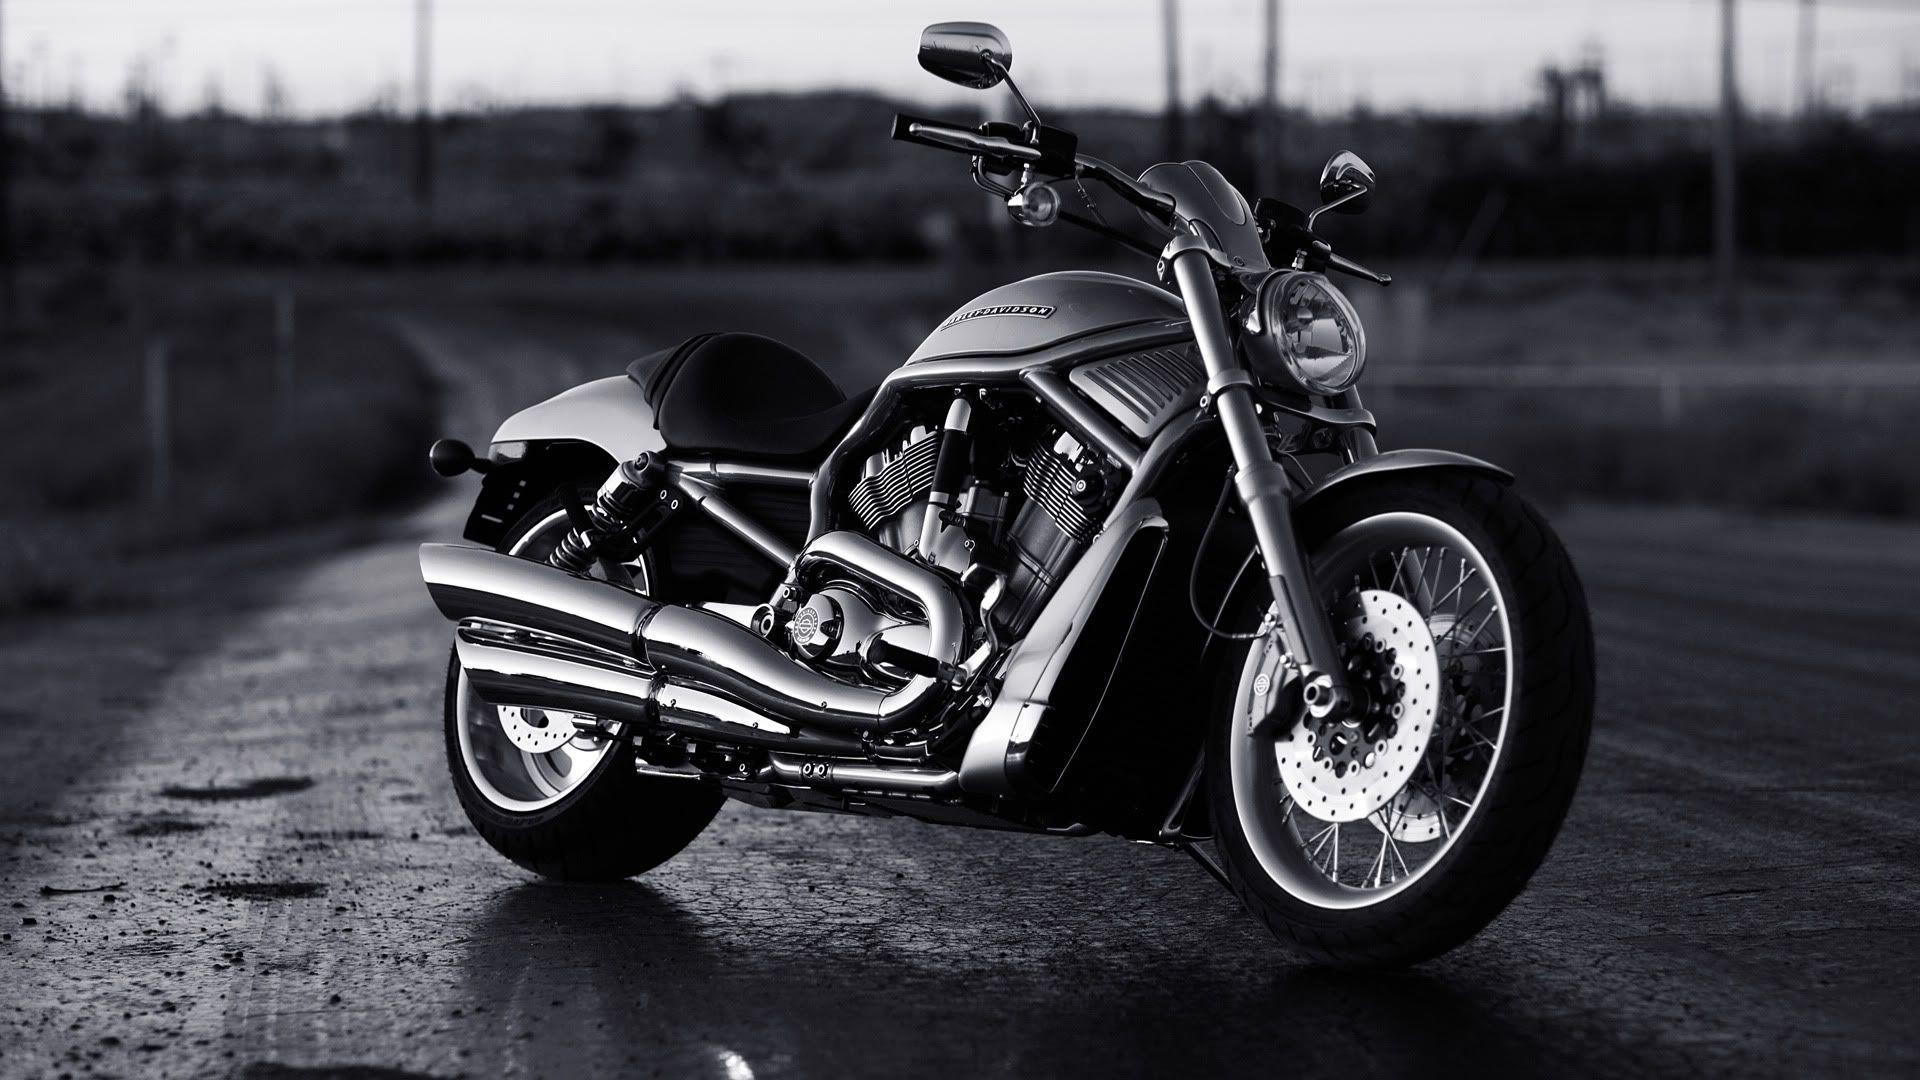 Harley Davidson V Rod Muscle Wallpapers 1920x1080